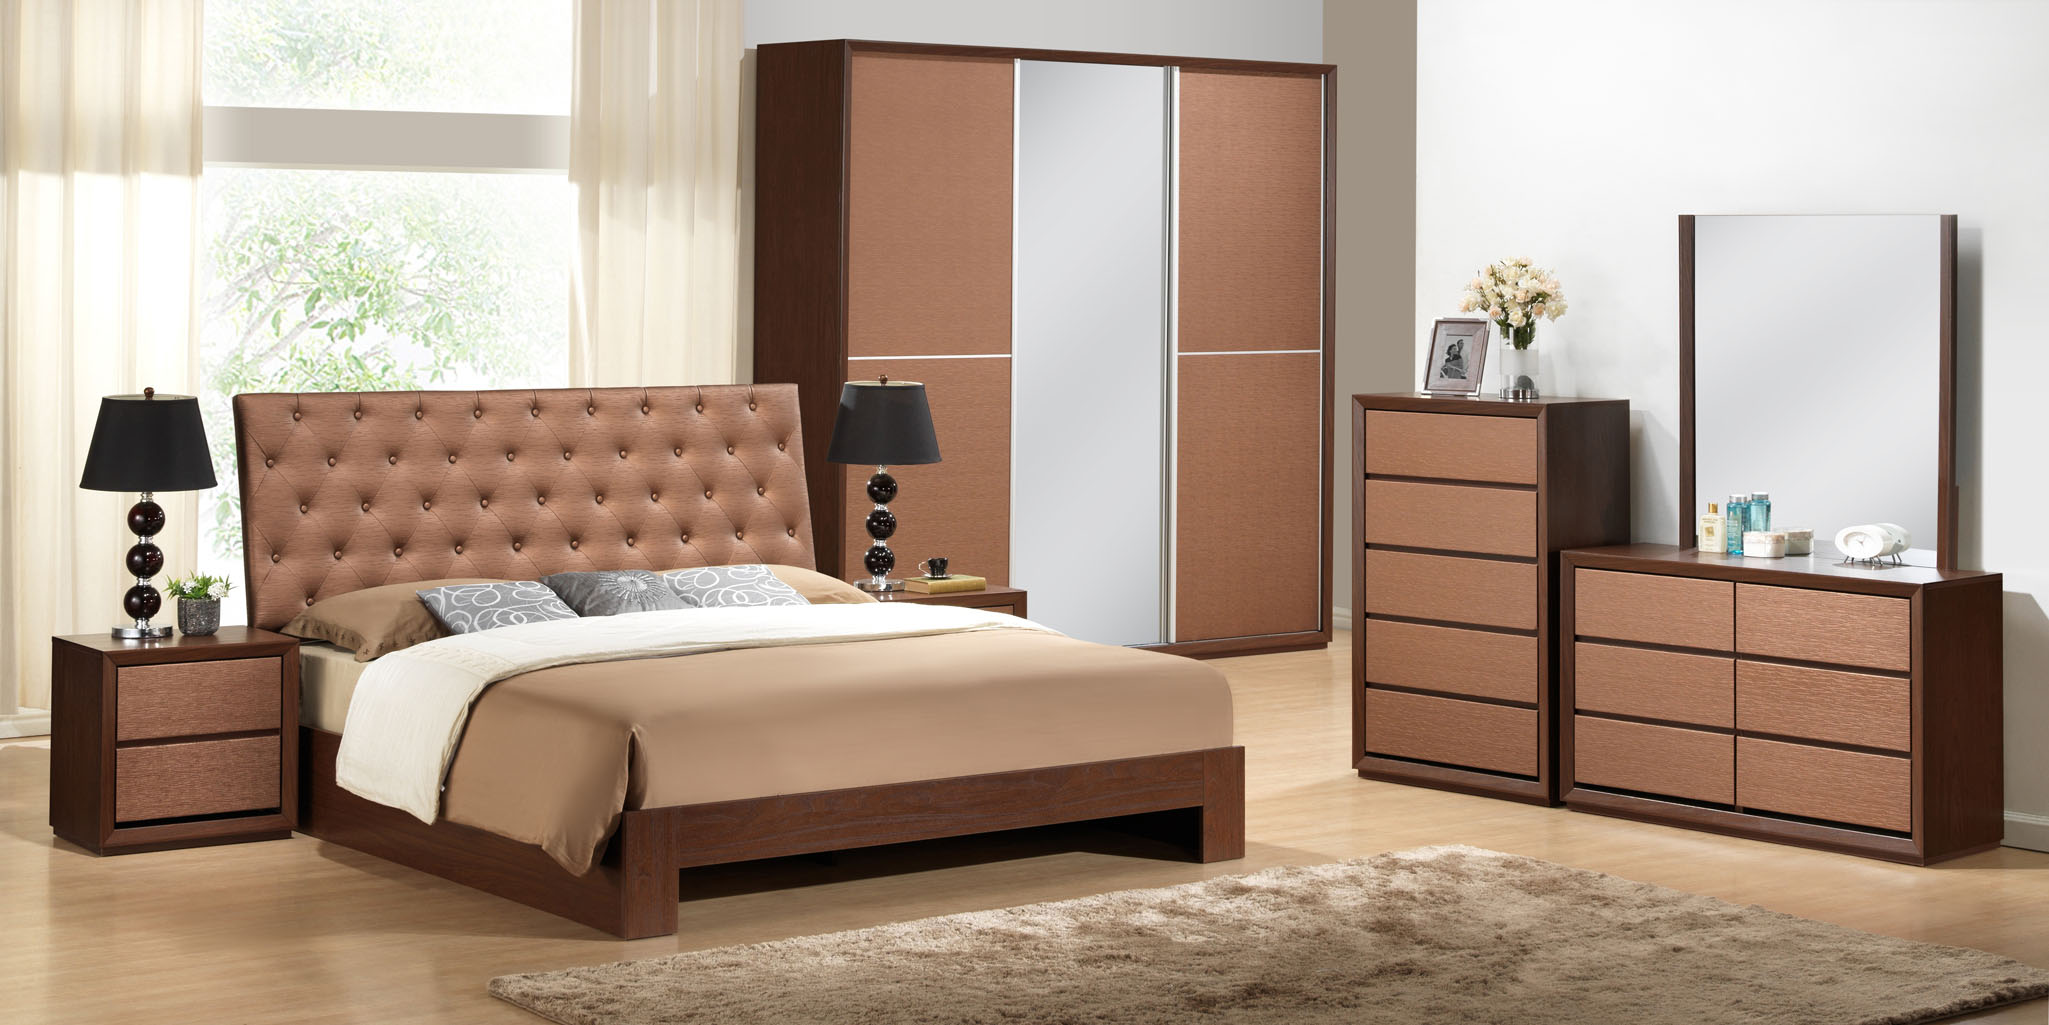 quincy bedroom set fair production sdn bhd. Black Bedroom Furniture Sets. Home Design Ideas